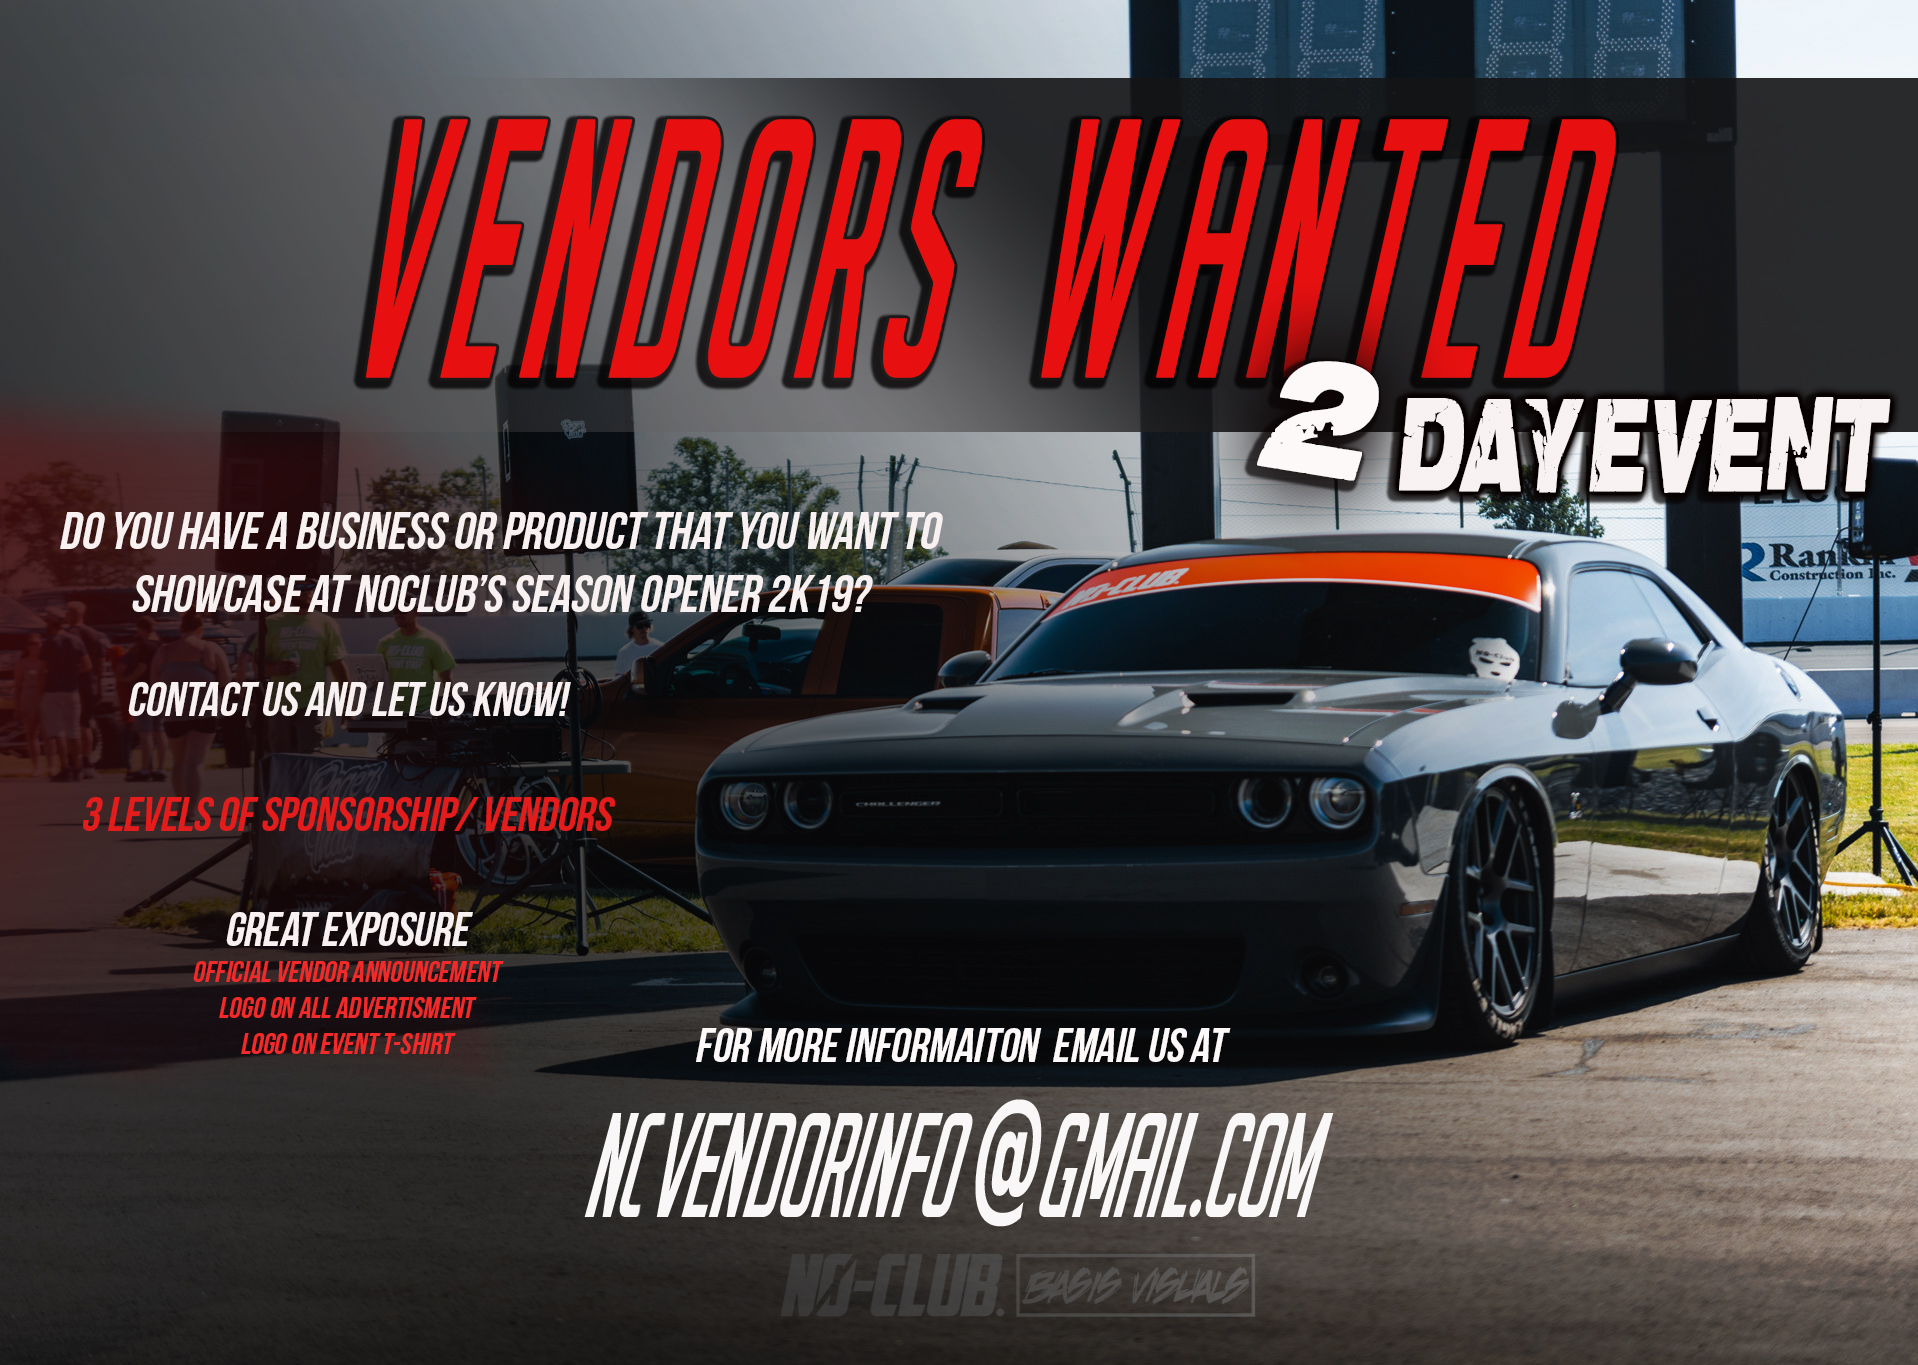 Are You Or Someone You Know Interested In Being A Vendor At Our Season Opener 2019? - Send us an email to NCVendorInfo@gmail.com and ask for more information!3 Vendor/Sponsorship levels available